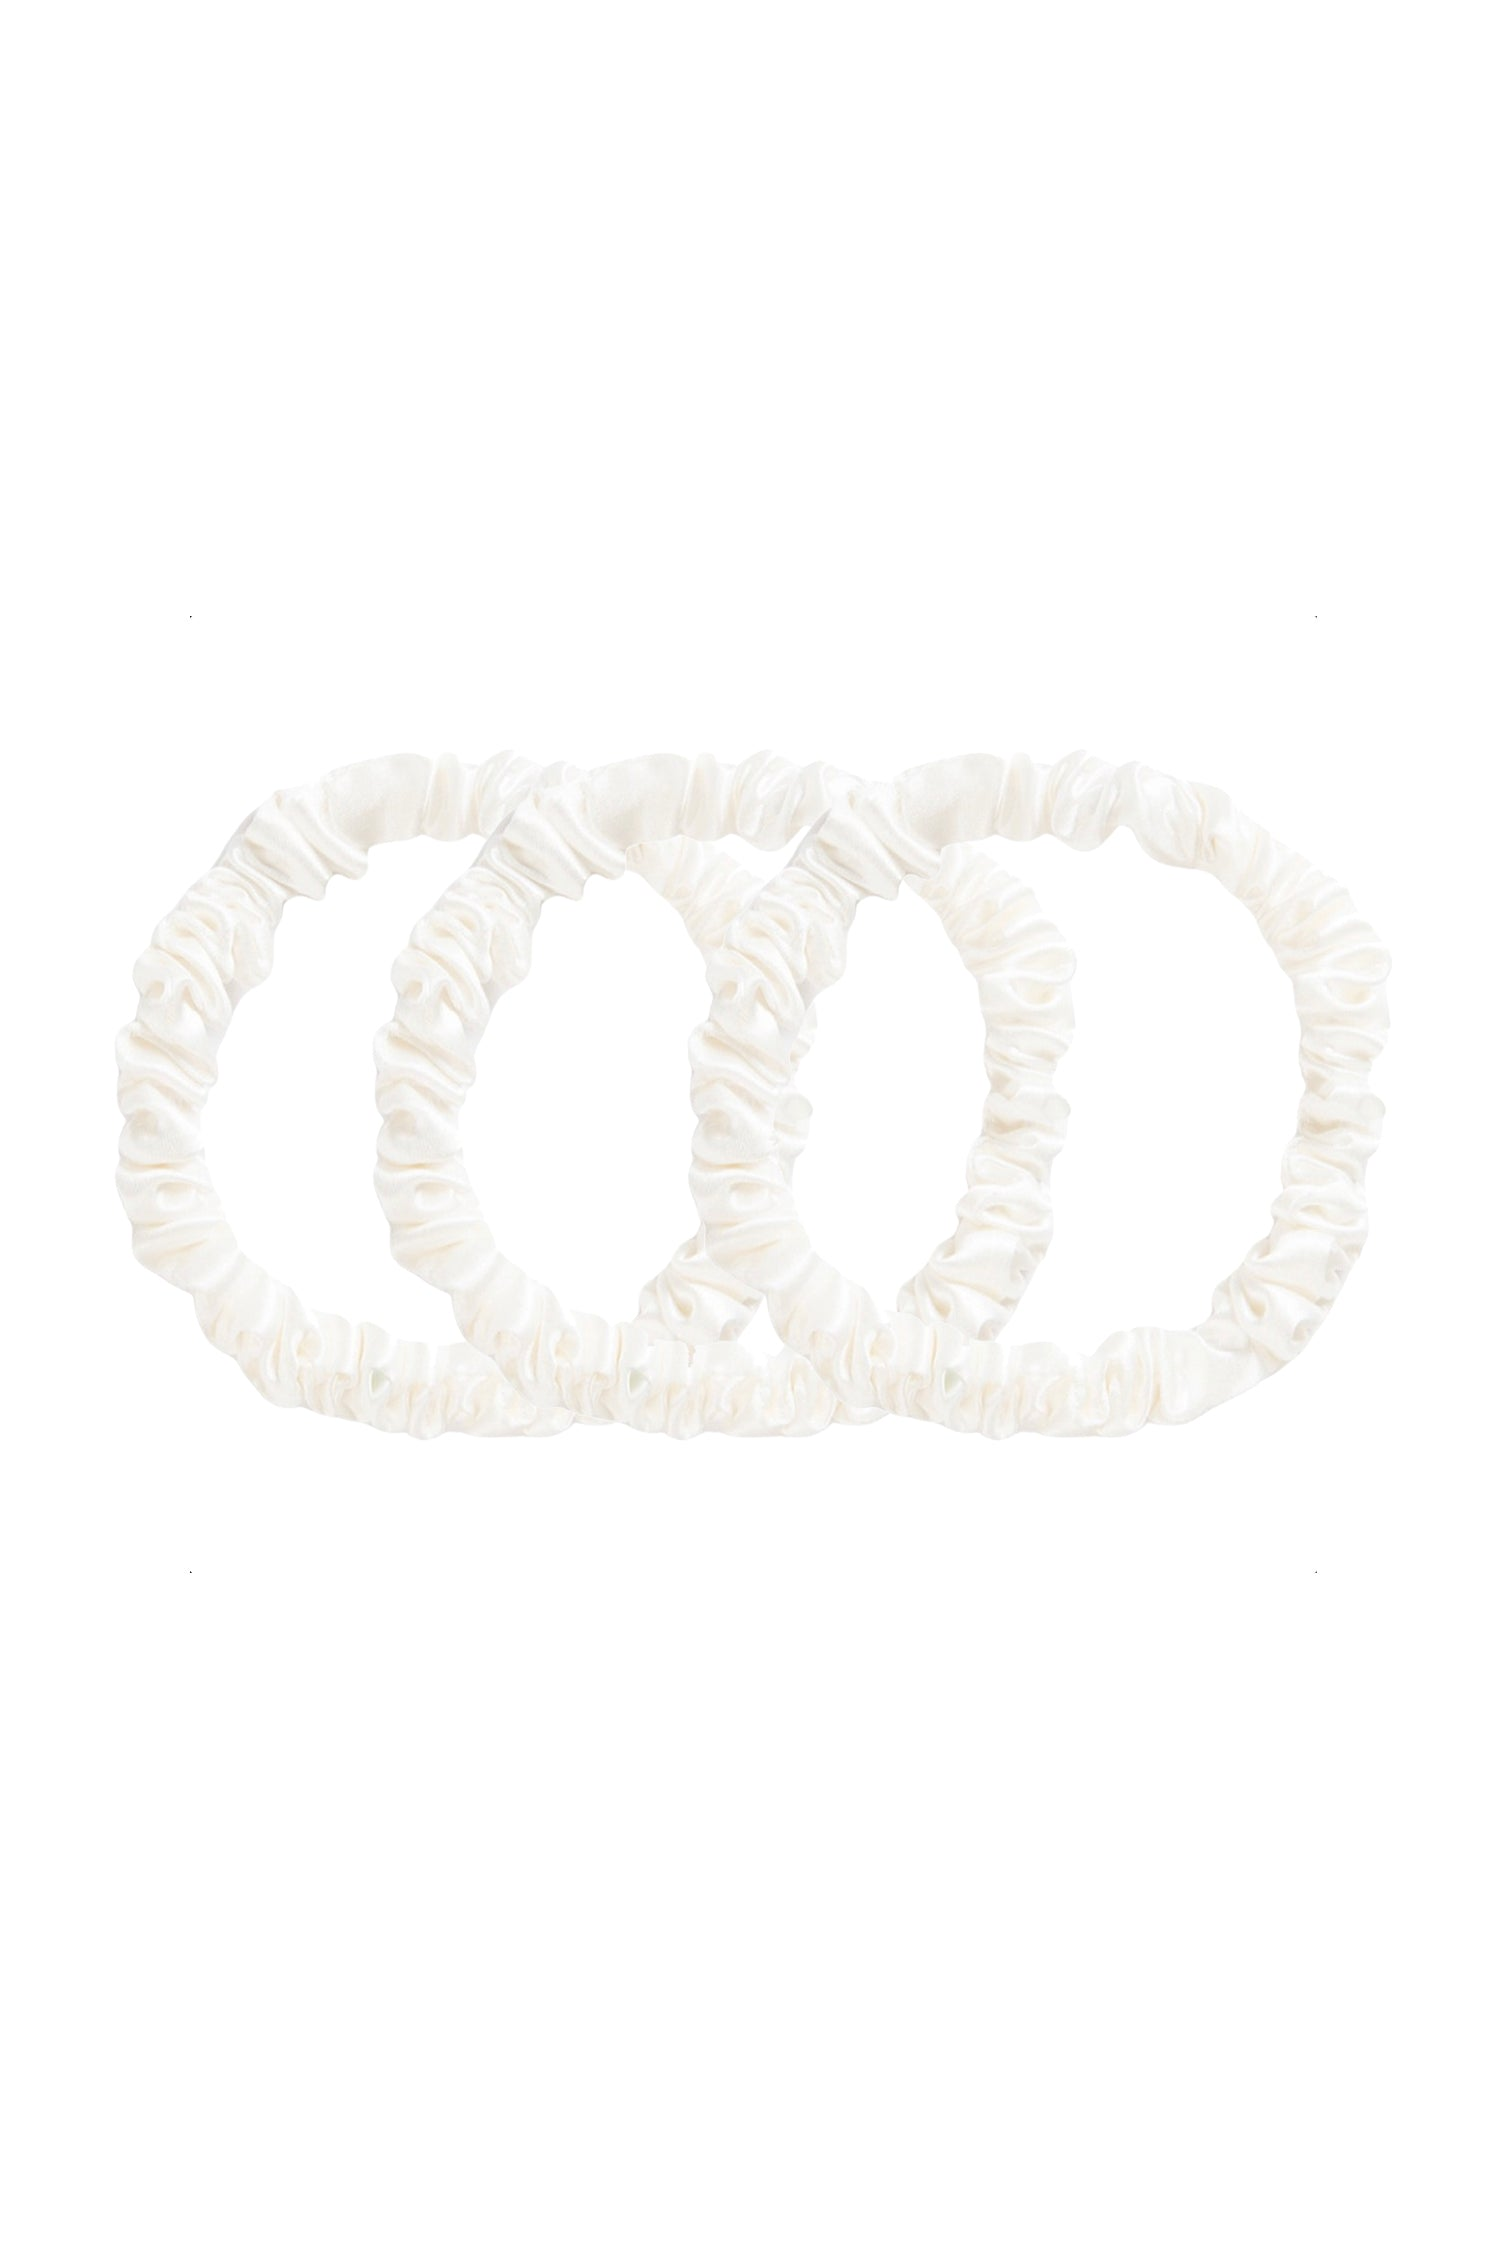 SMALL Silk Hair Ties - Pearl White - BASK ™